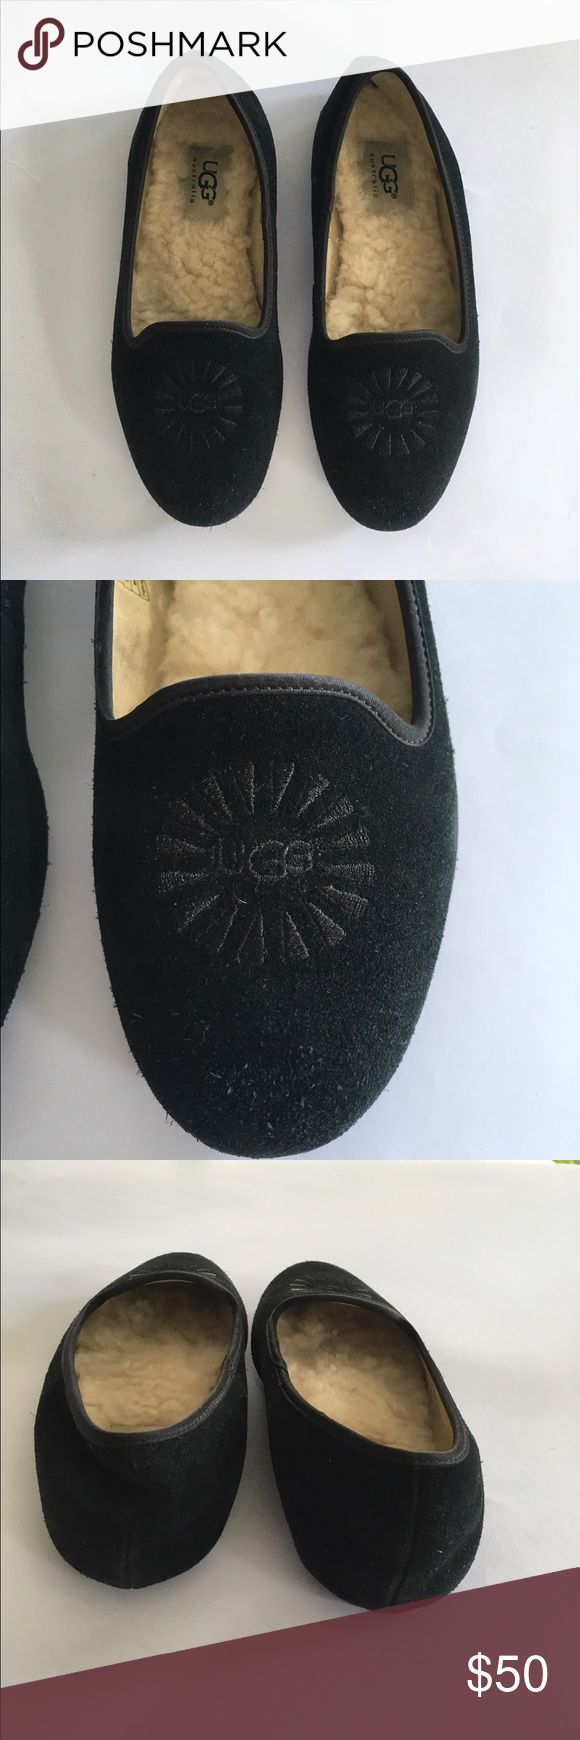 UGG Australia Girls Kids Loafers Shoes Moccasin 2 These are in good used condition. It's super cute for every day where. girls size 2. Bundle discount below UGG Shoes Moccasins